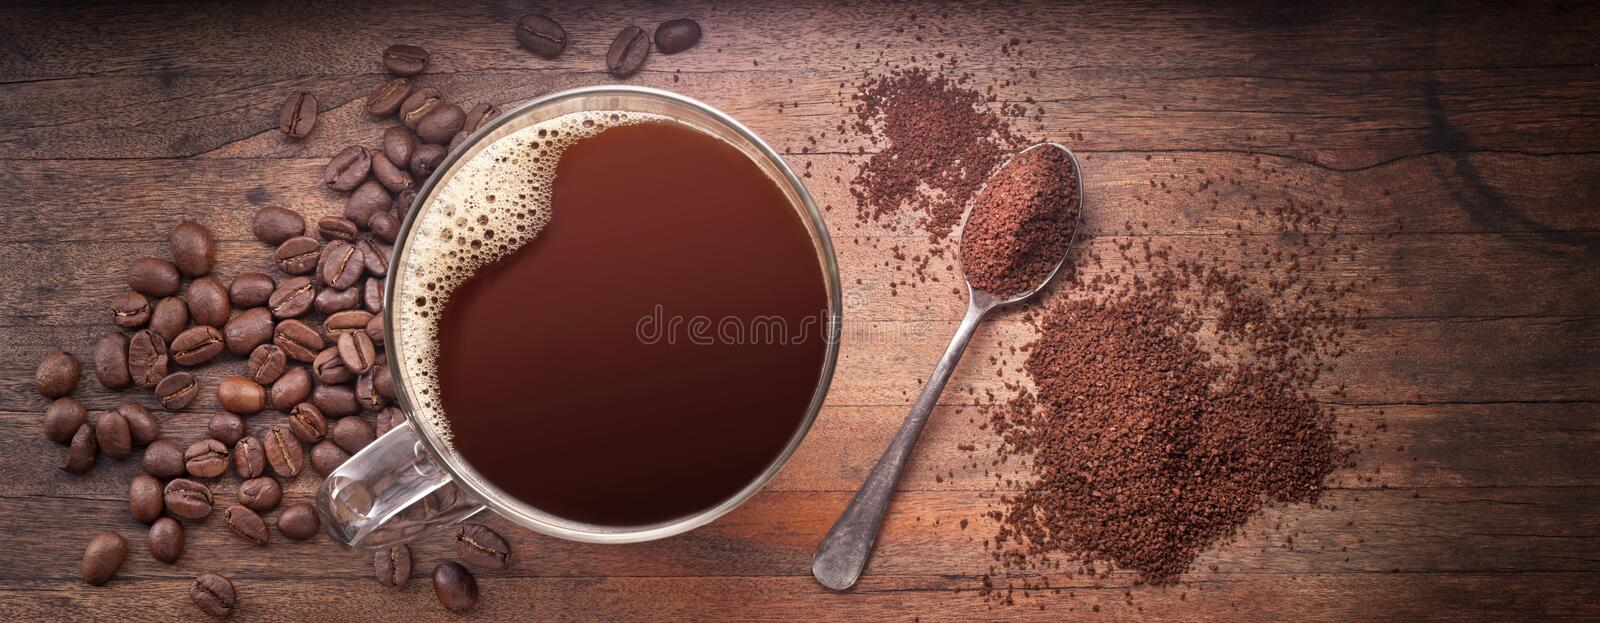 Coffee Beans Cup Banner Background royalty free stock photo